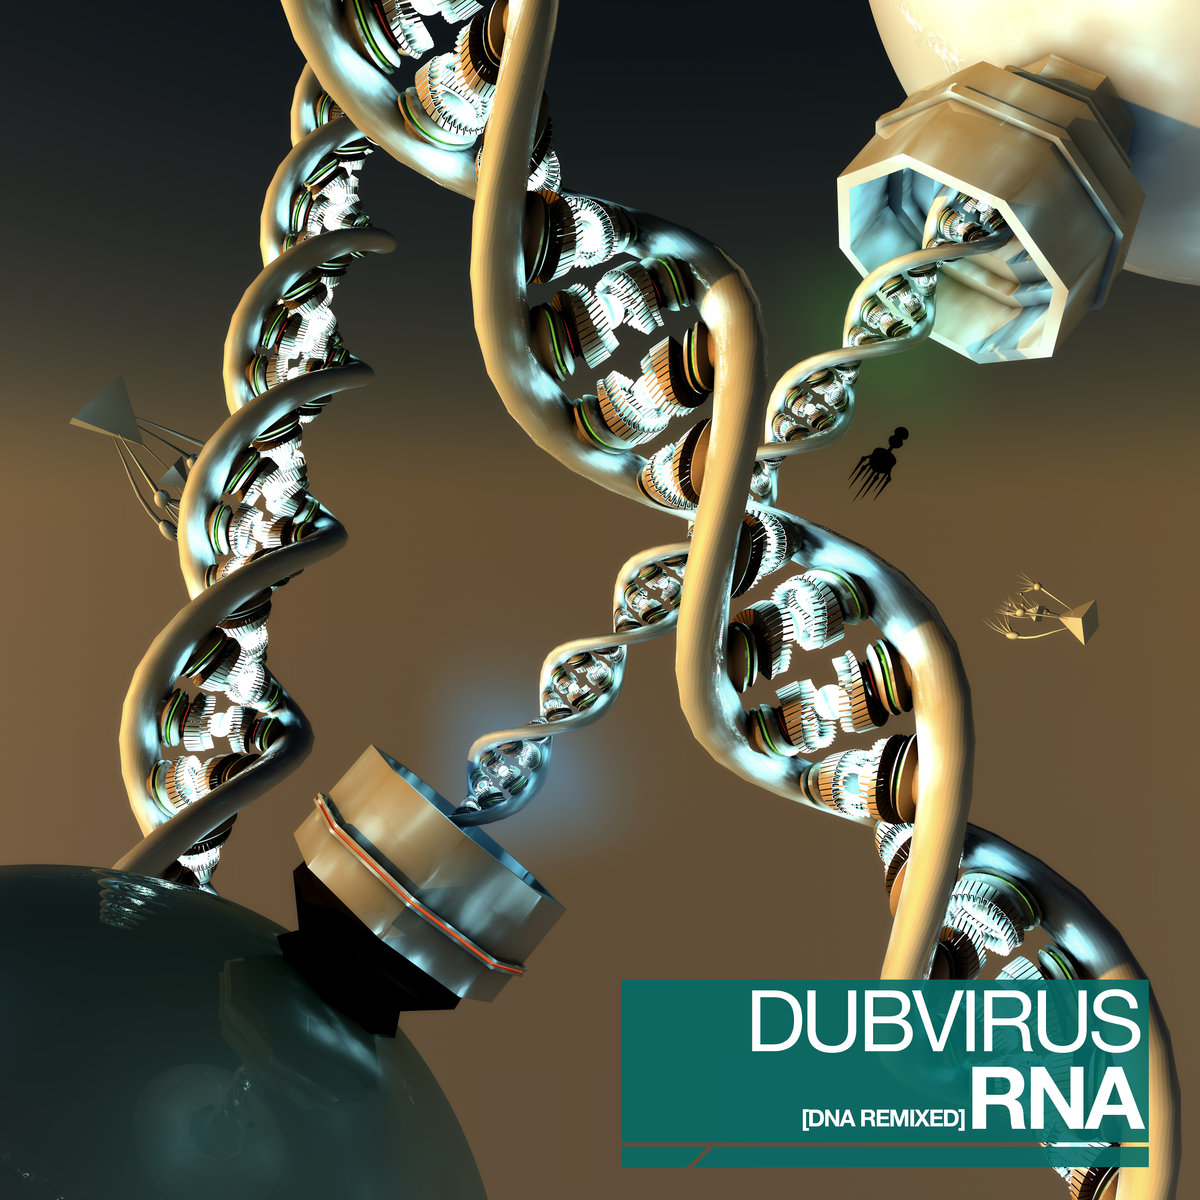 Dubvirus - Rising Sign (ChrisB Remix) @ 'RNA (DNA Remixed)' album (bass, dubvirus)